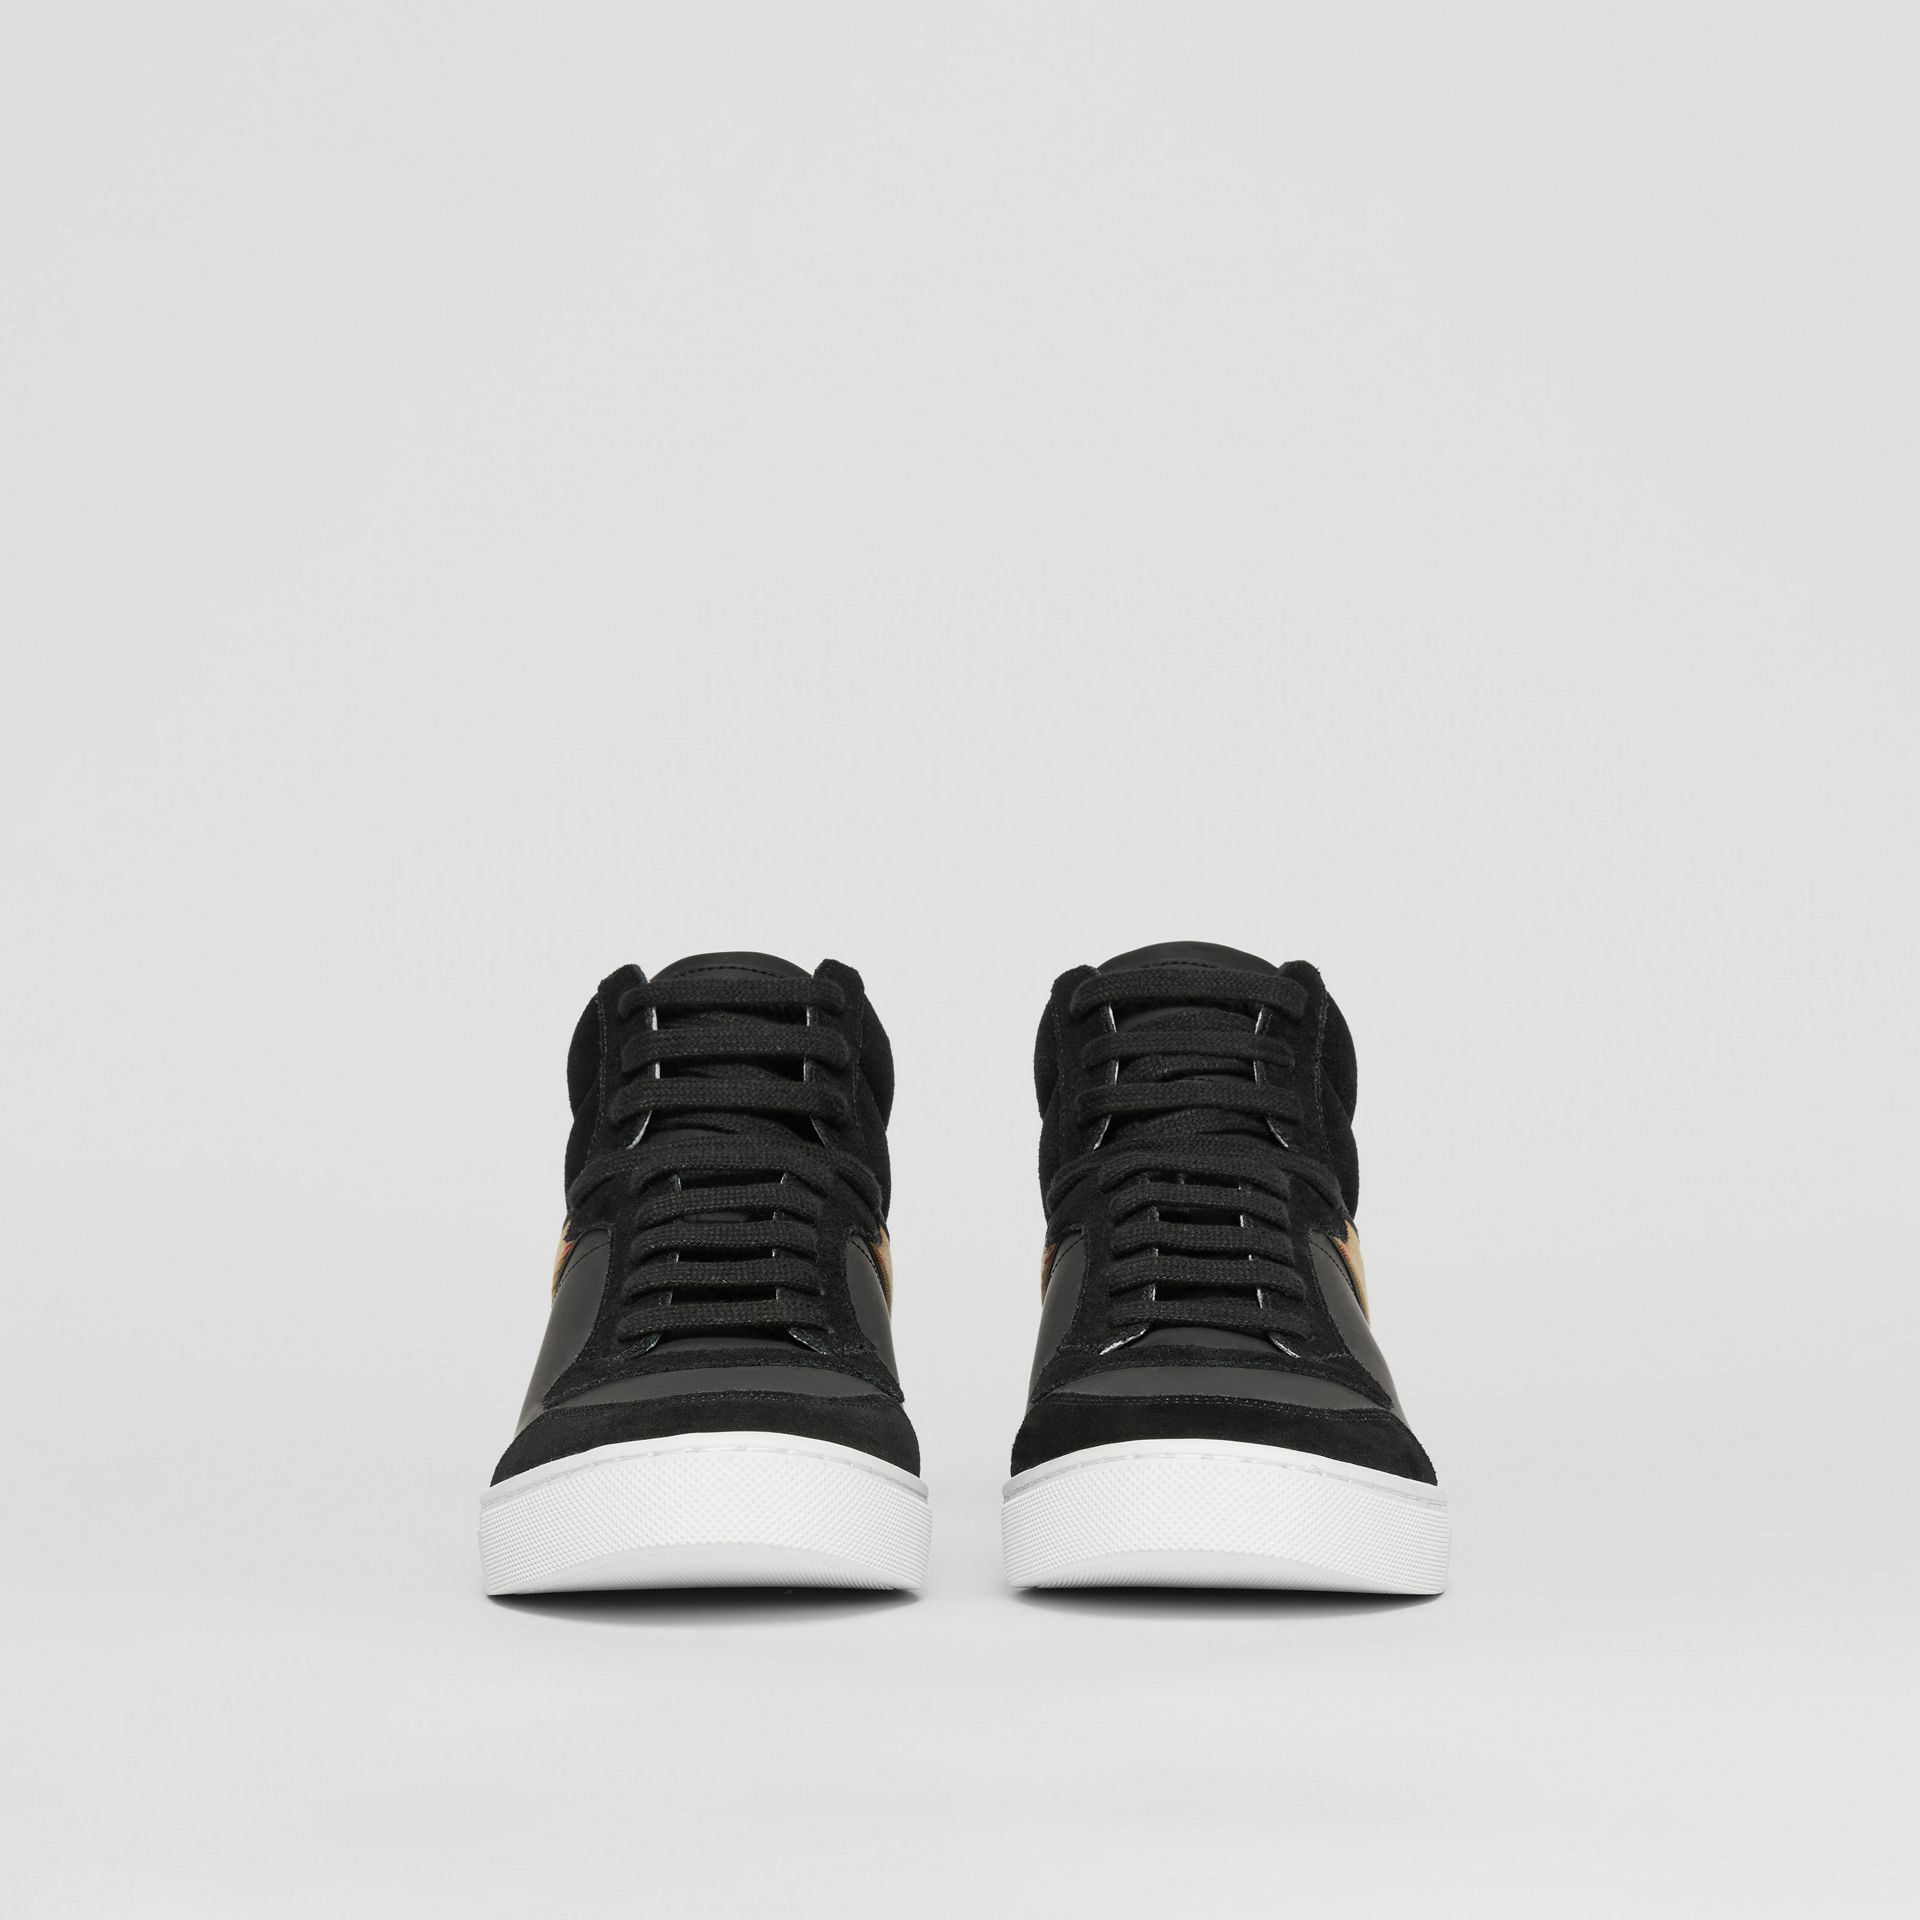 Leather, Suede and House Check High-top Sneakers in Black - Men | Burberry United States - gallery image 2